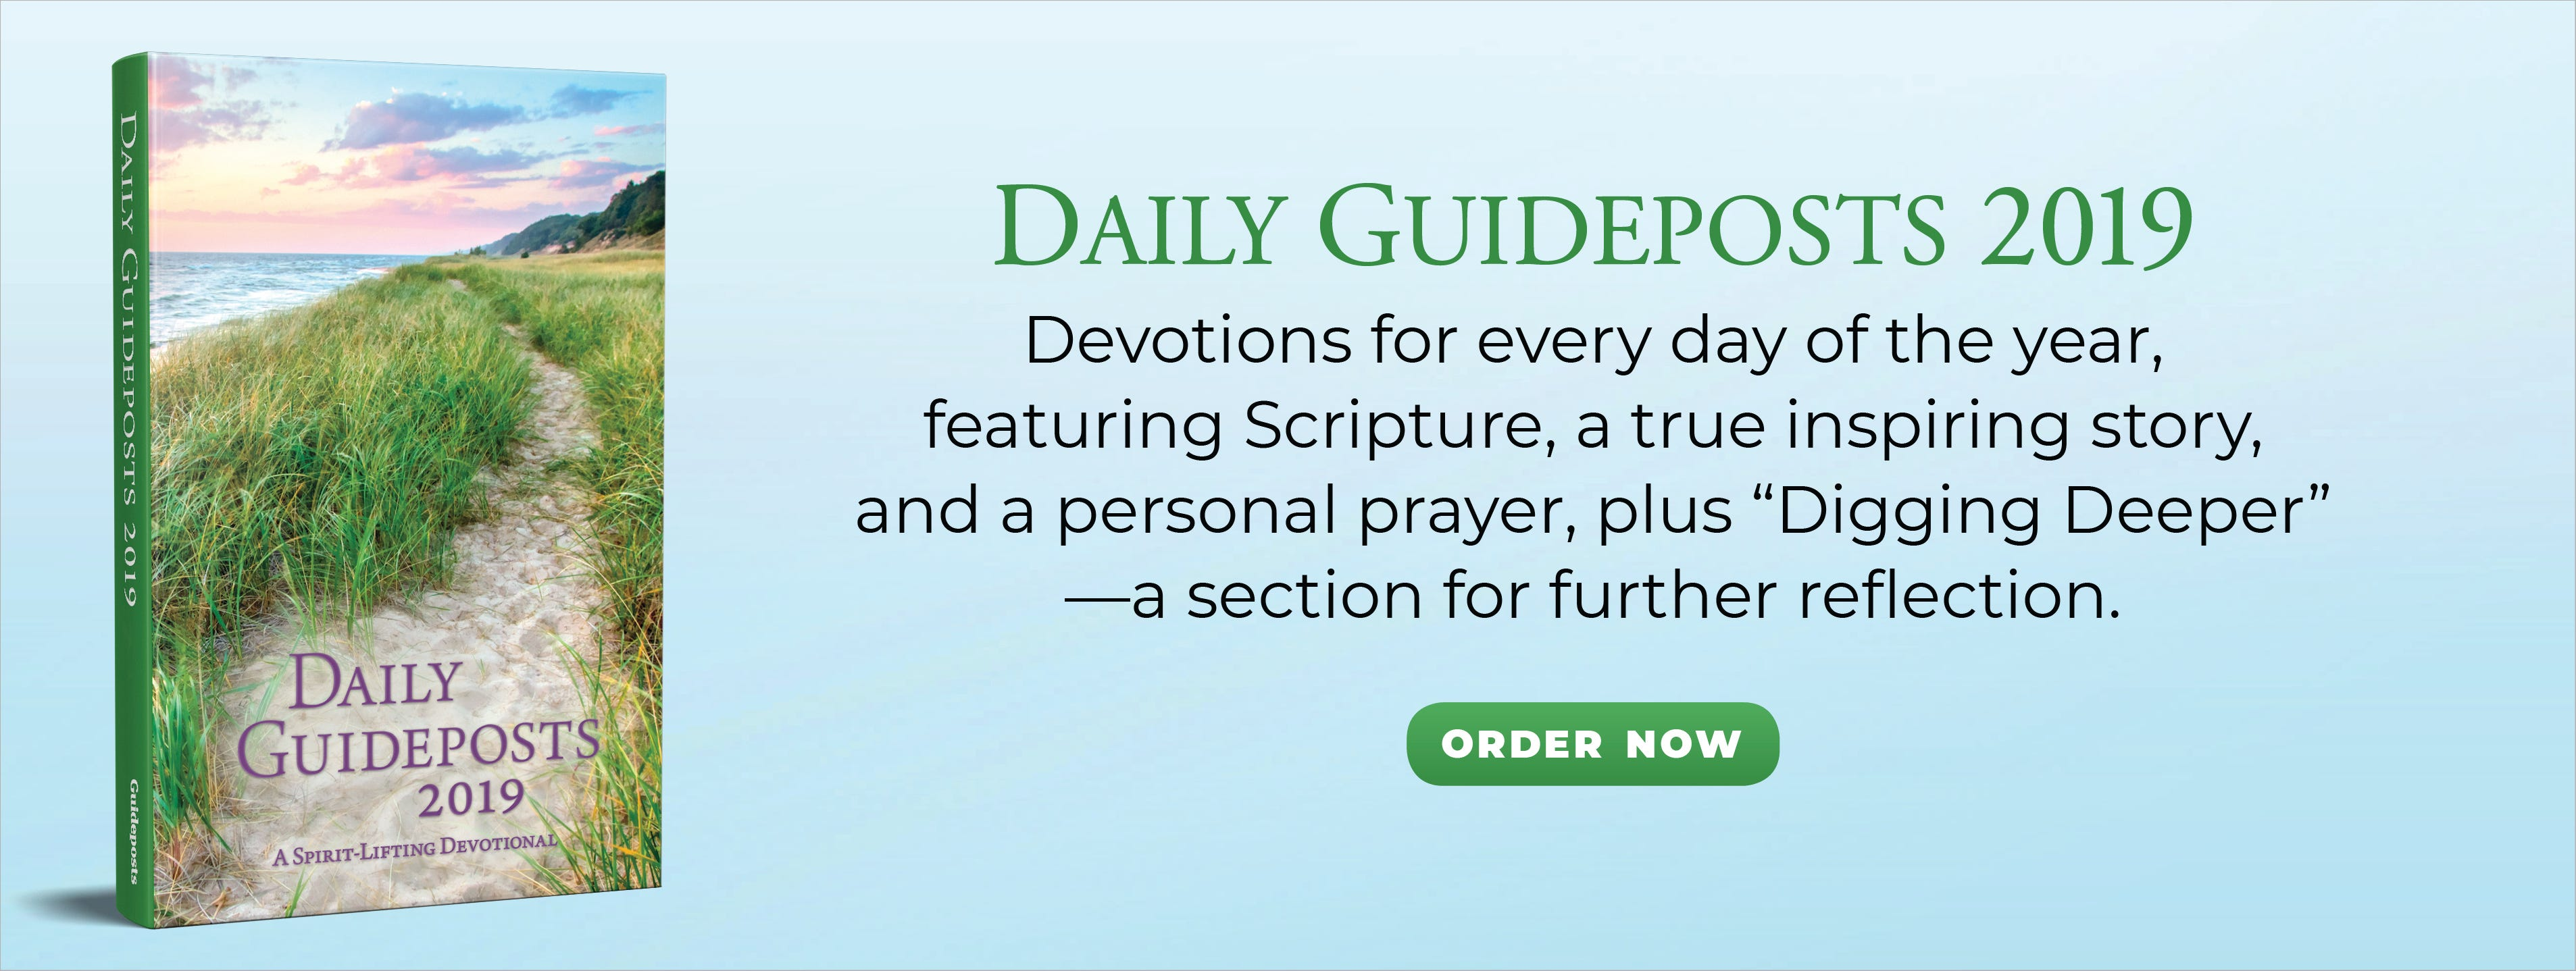 Learn more about Daily Guideposts 2019!